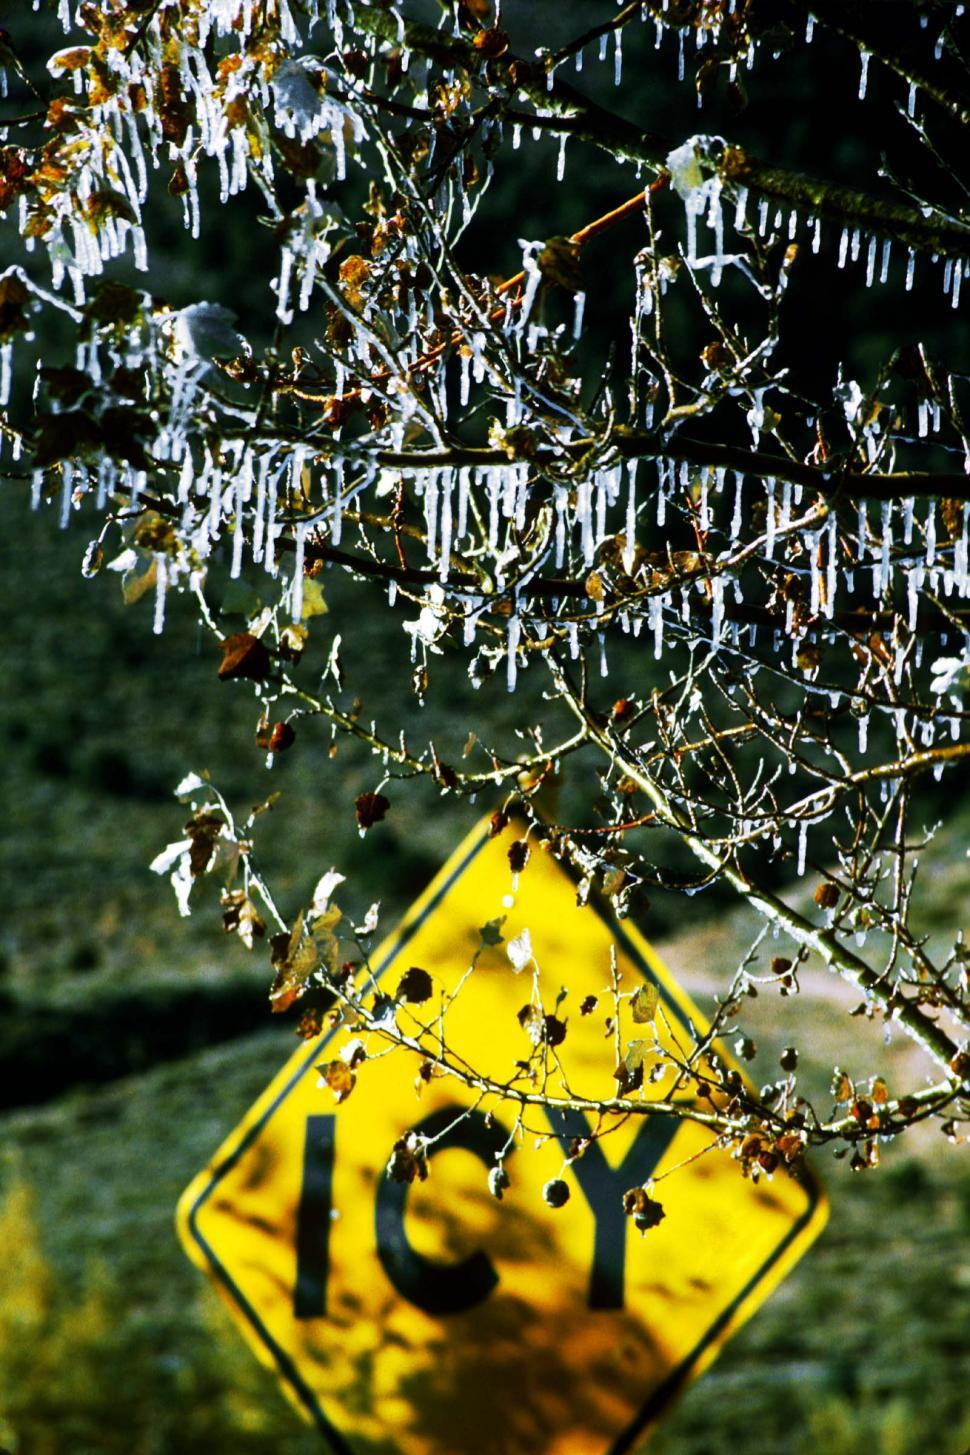 Download Free Stock HD Photo of Icy Roads sign with holes and frozen tree Online